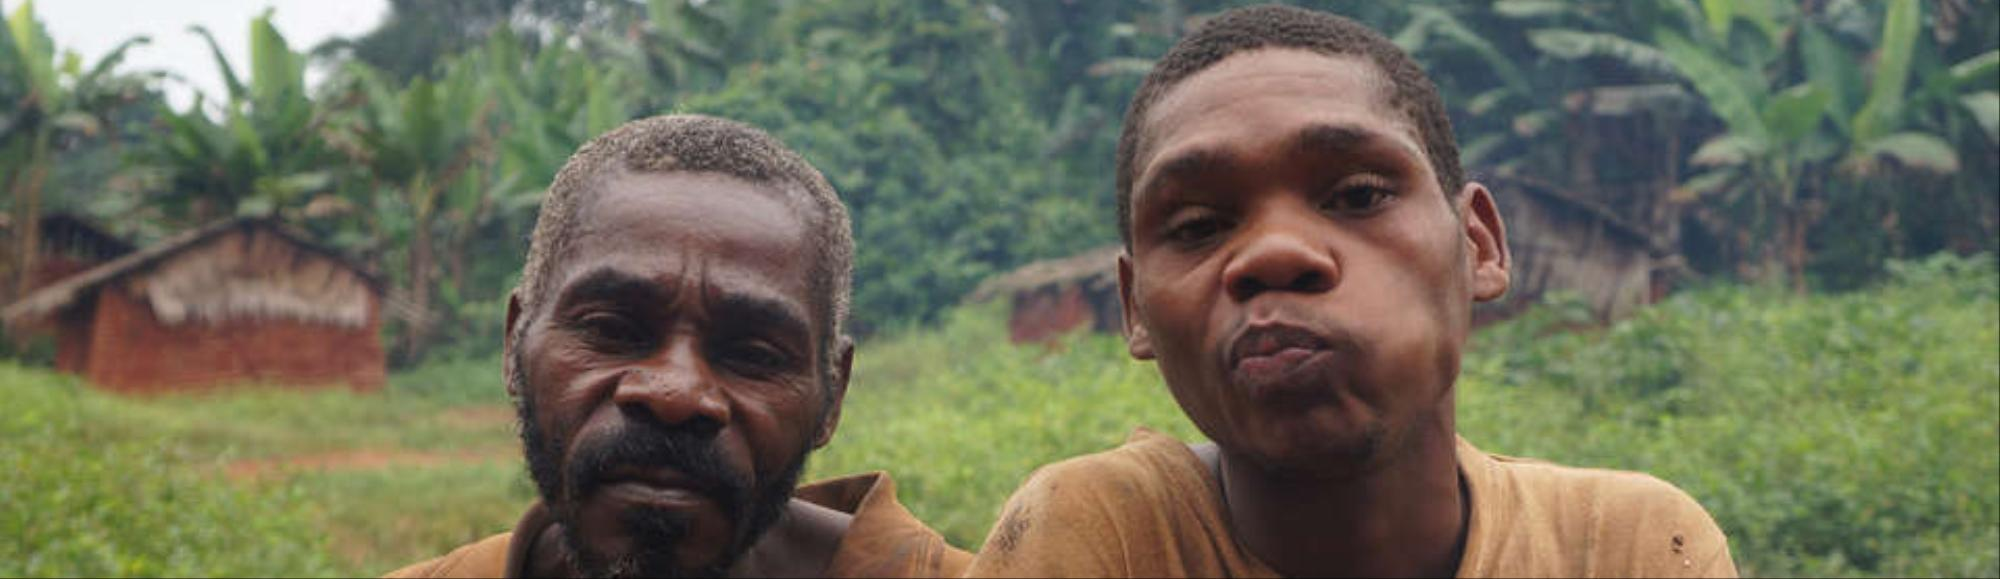 Human Rights Complaint Filed Against Eco Guards Who Terrorize African Pygmies